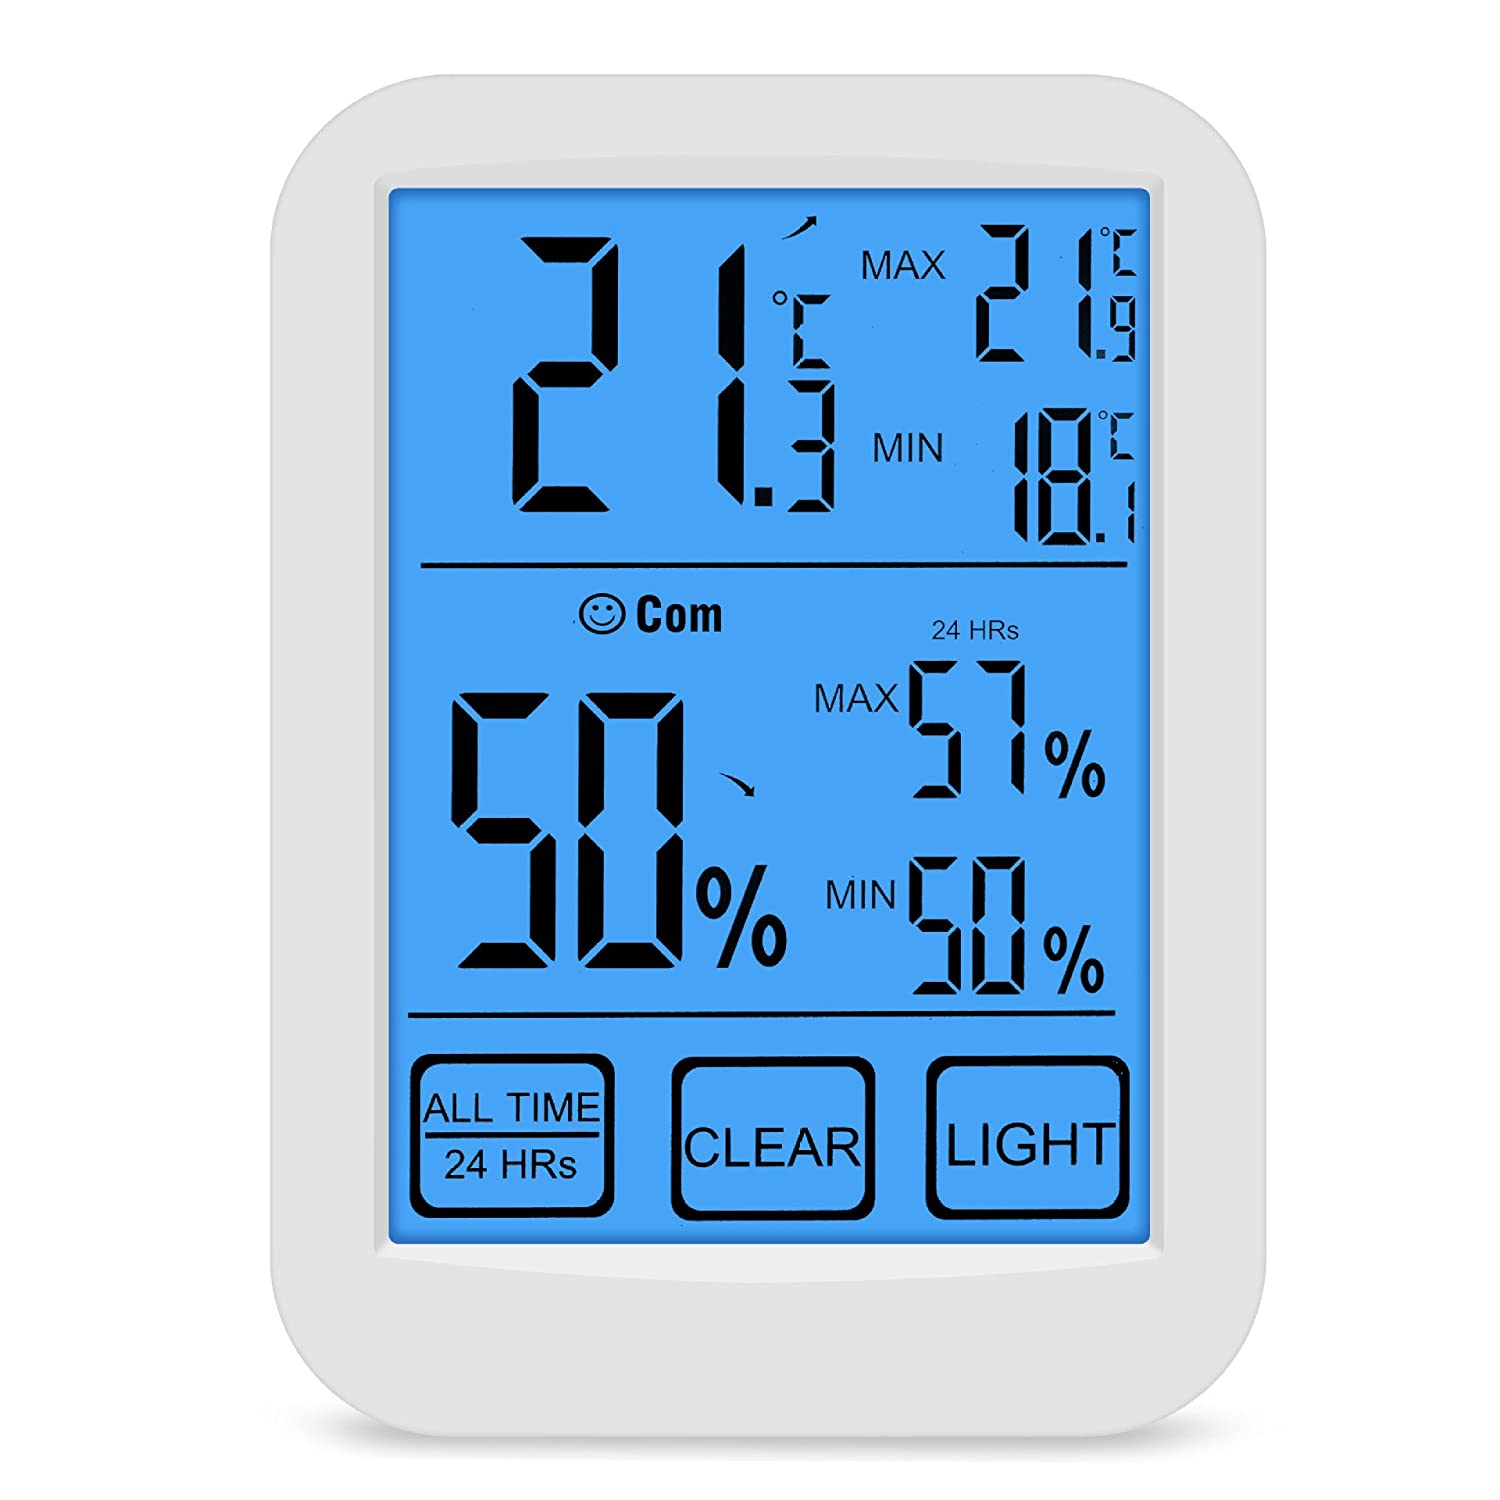 Sanp Indoor Outdoor Digital Hygrometer Thermometer, Humidity Monitor Wireless with LCD Display, Touchscreen and Nightlight Temperature Humidity Monitor for Home, Office, Bedroom,Baby Room, Warehouse